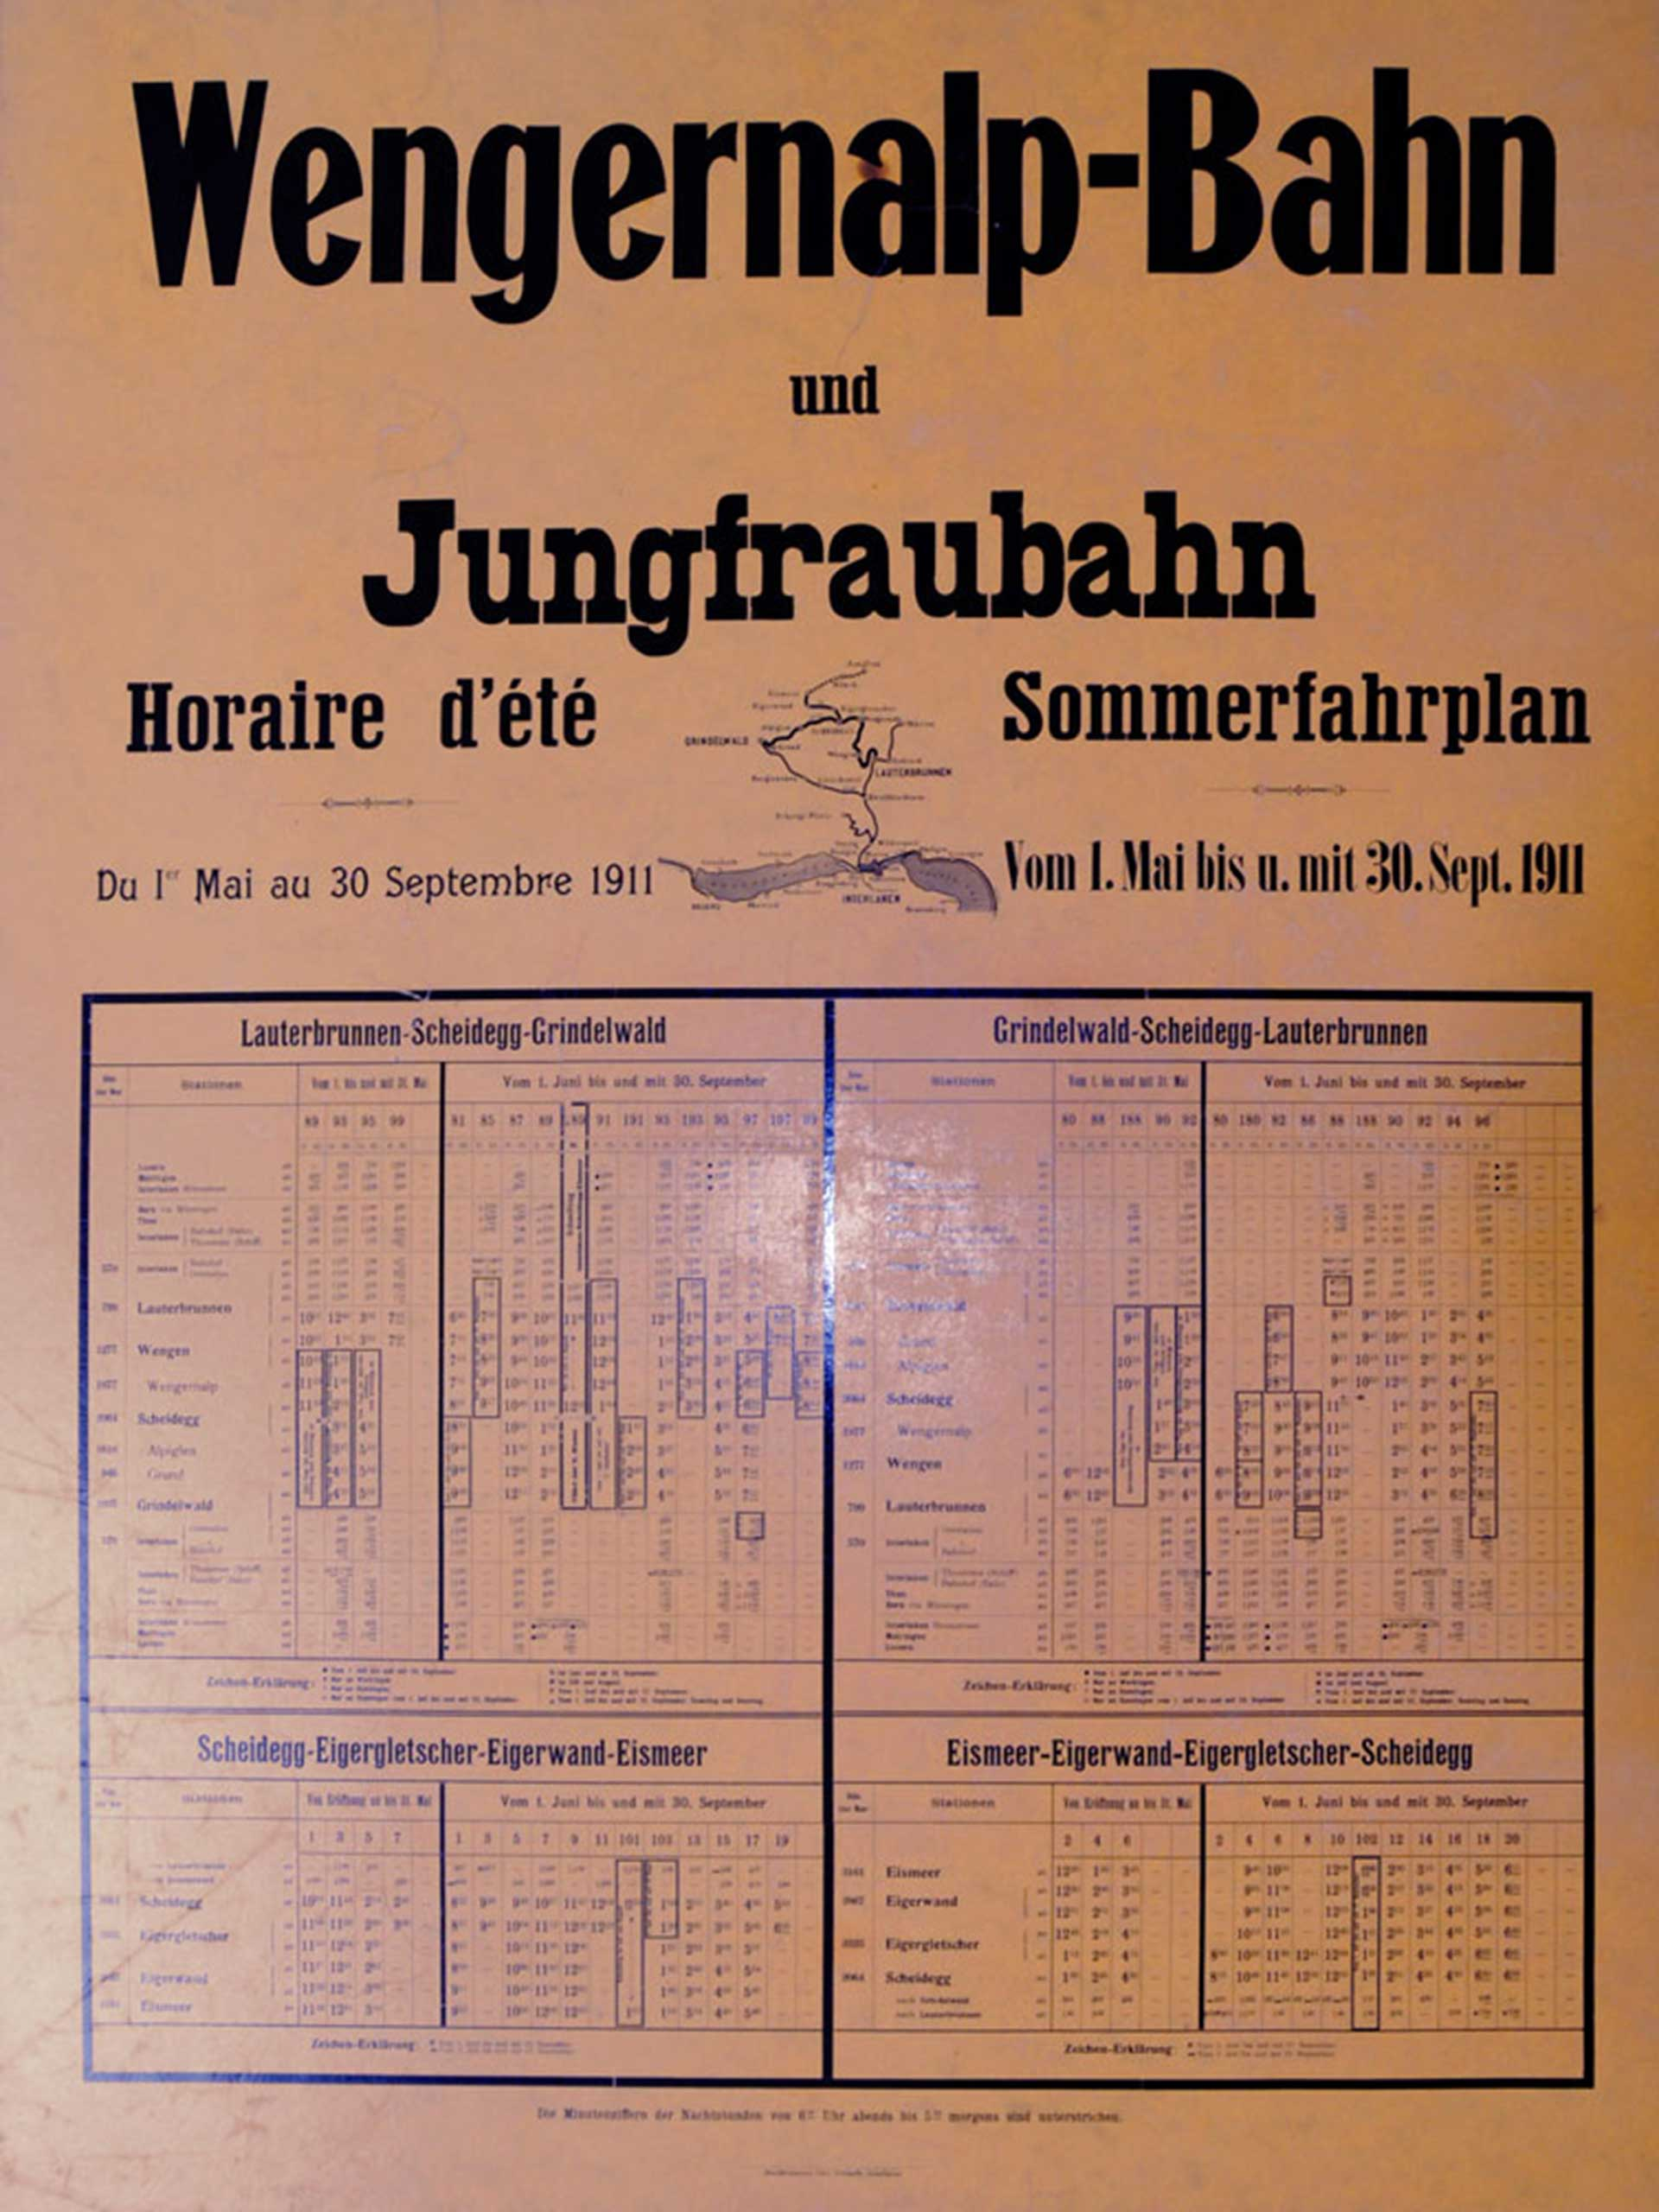 Wengernalp- and Jungfraubahn - Timetable